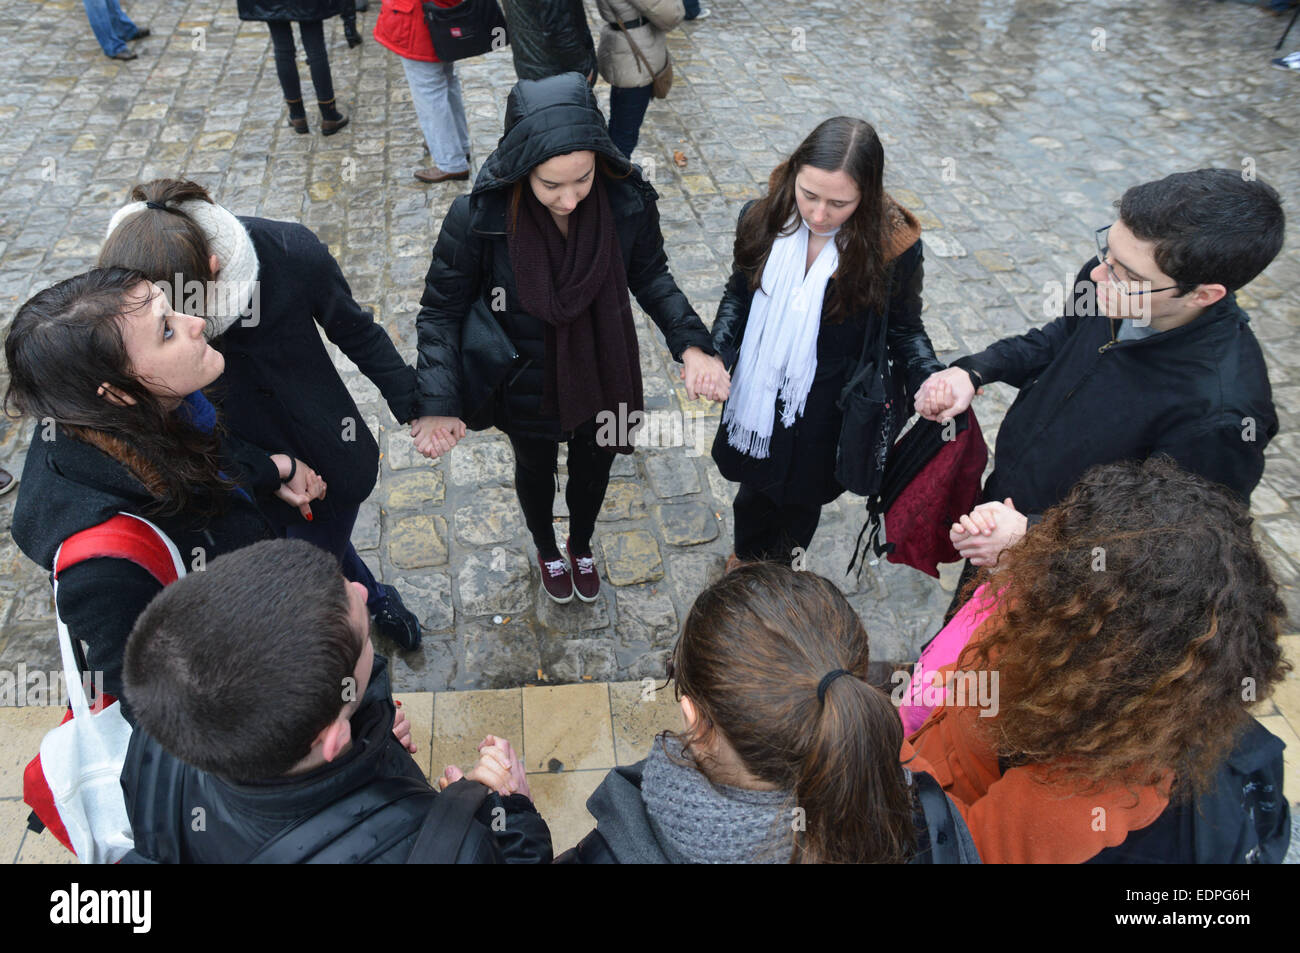 Paris, France. 8th Jan, 2015. People gather for a minute of silence for the victims of the January 7 attack against Stock Photo